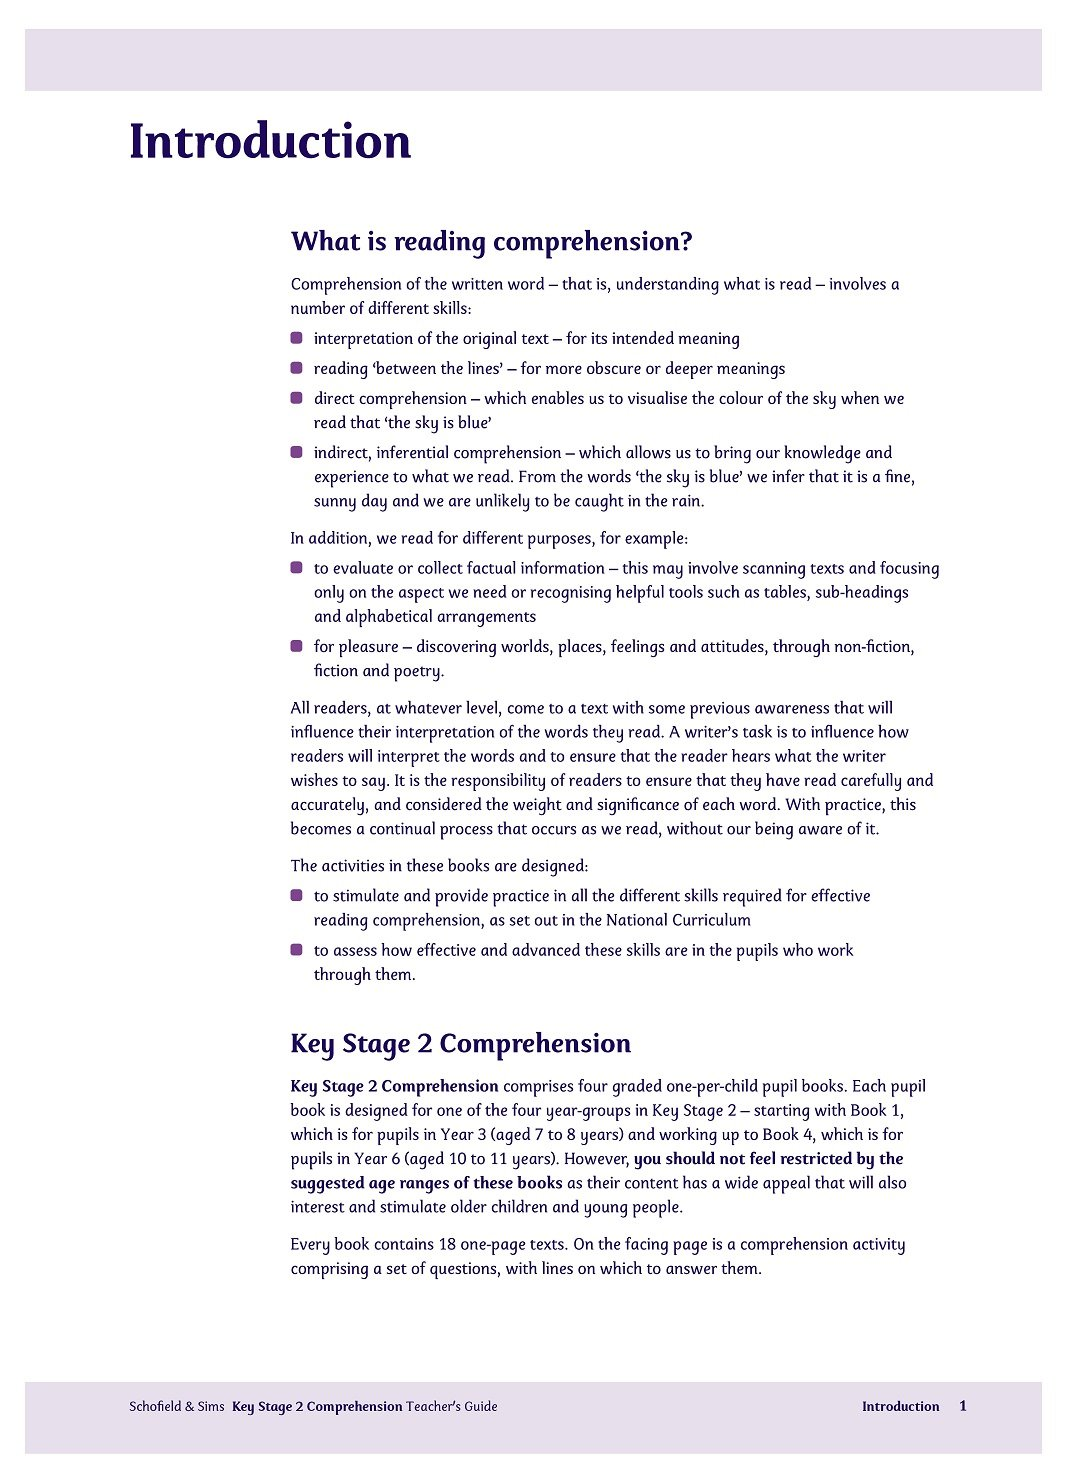 KS2 Comprehension Teacher's Guide: Years 3-6, Ages 7-11 (for the ...